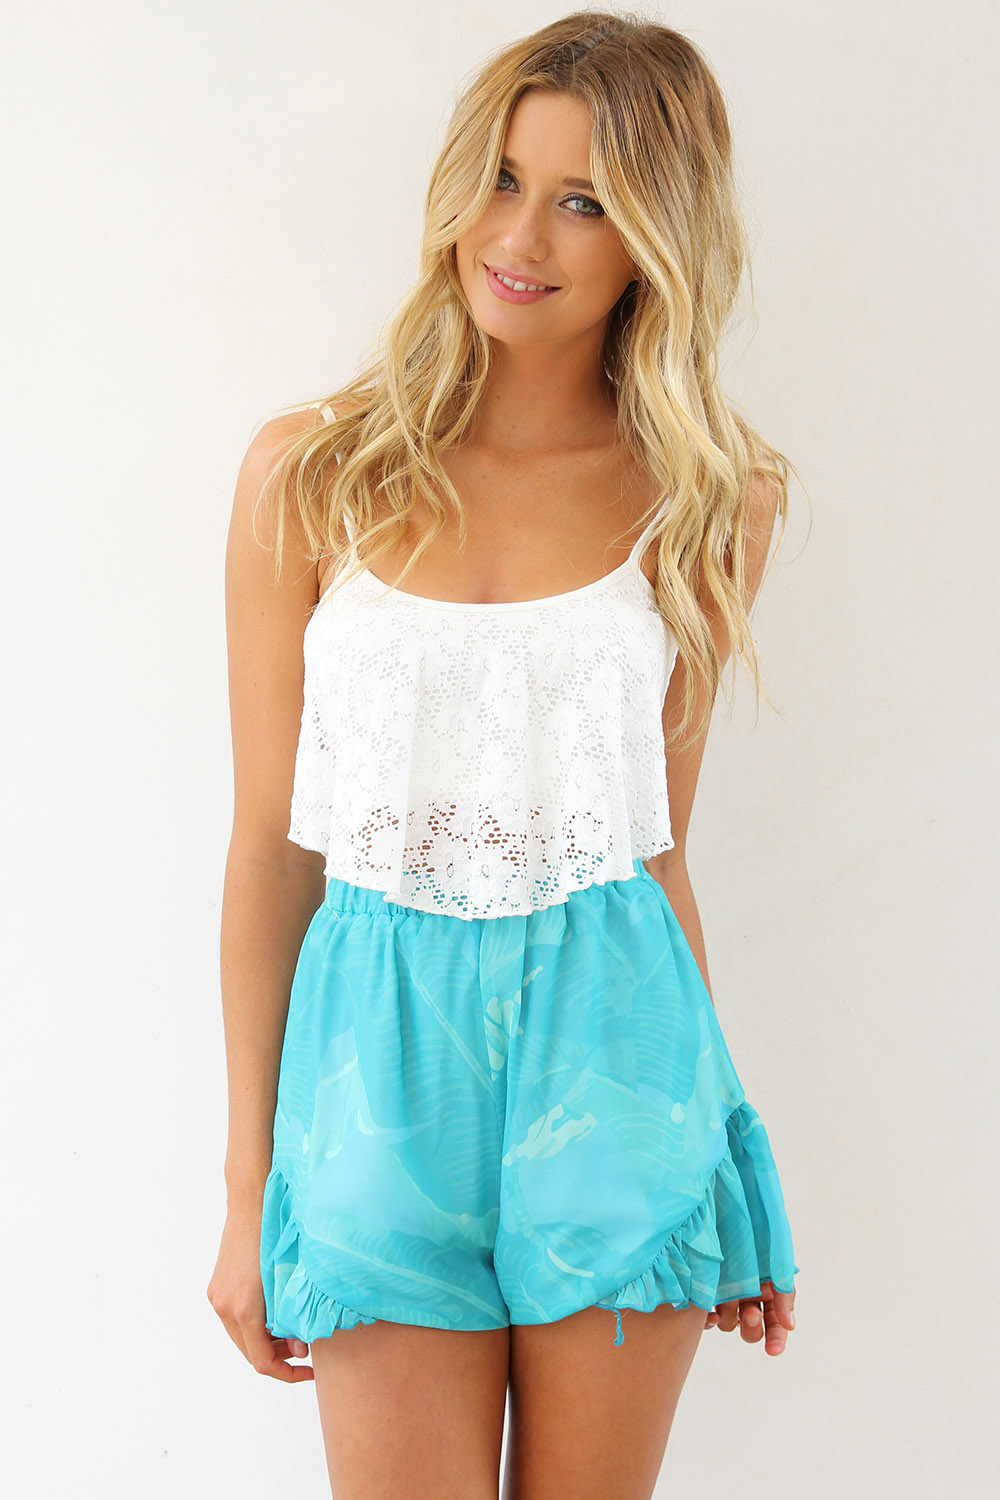 White Sleeveless Top - White Sleeveless Crop Top with   UsTrendy